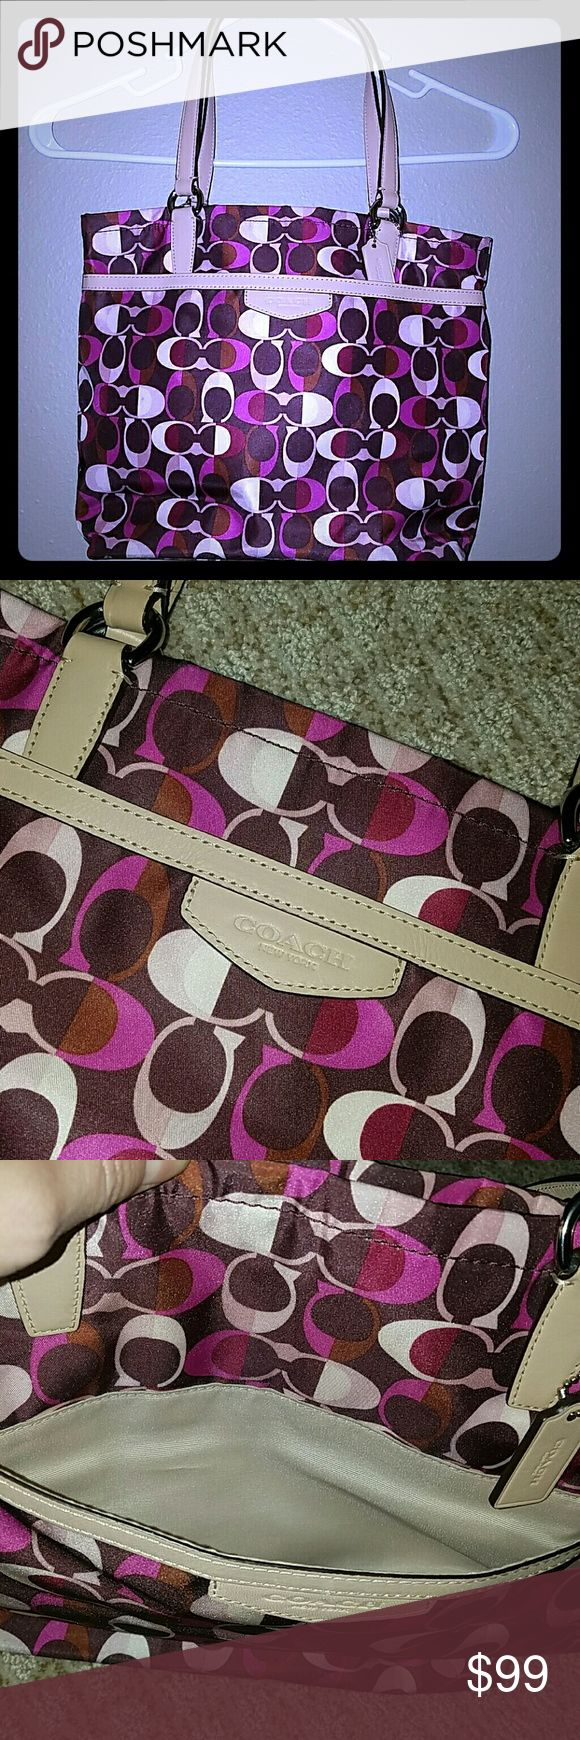 Coach Tote/Purse Multi colored (pink/fushia/purple/tan) Coach tote/Purse. Fabric, zipper closure top, outside open pocket, 2 open pockets inside purse, zipper pocket inside. Stitching intact. Pre-owned. Coach Bags Shoulder Bags